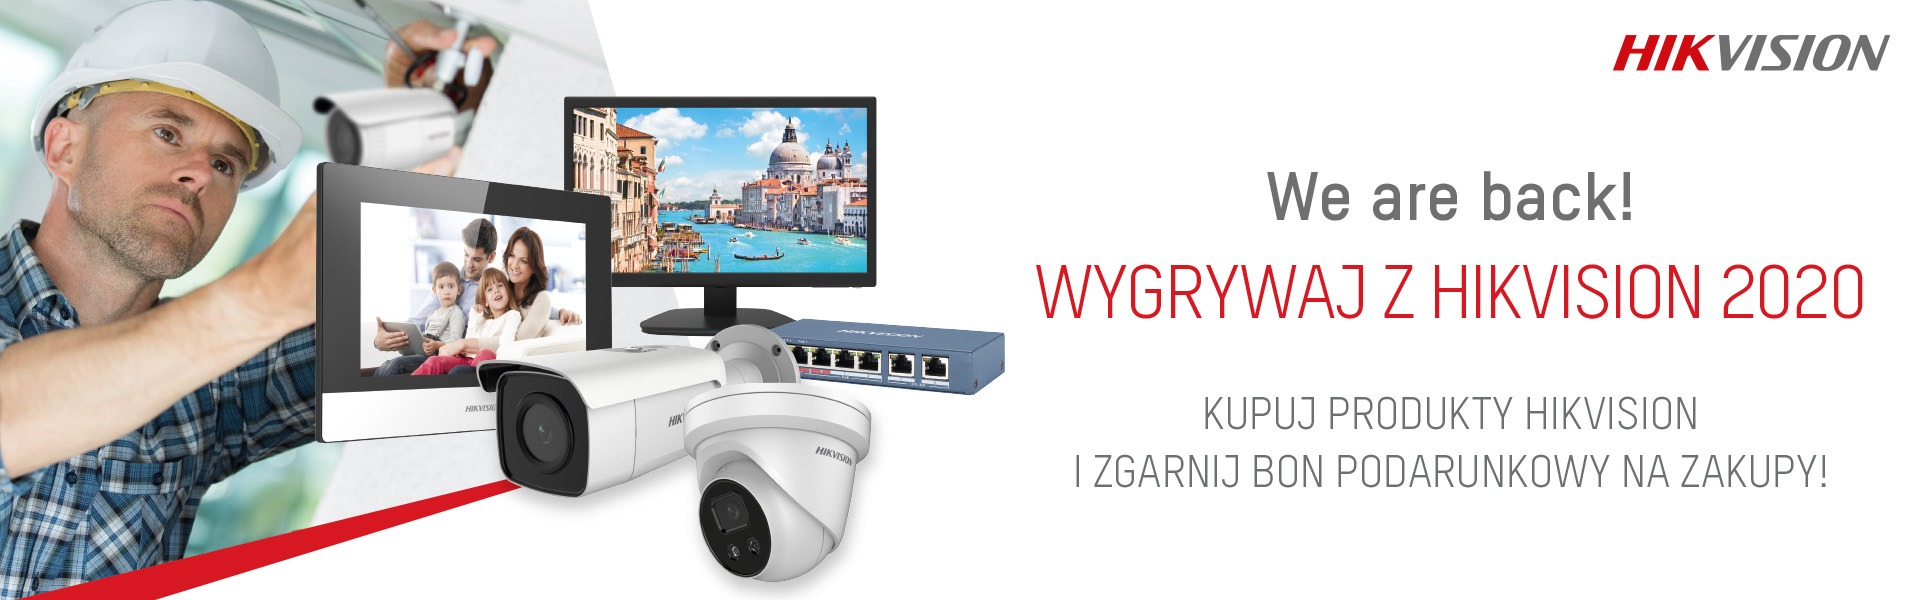 Hikvision We are back 2020